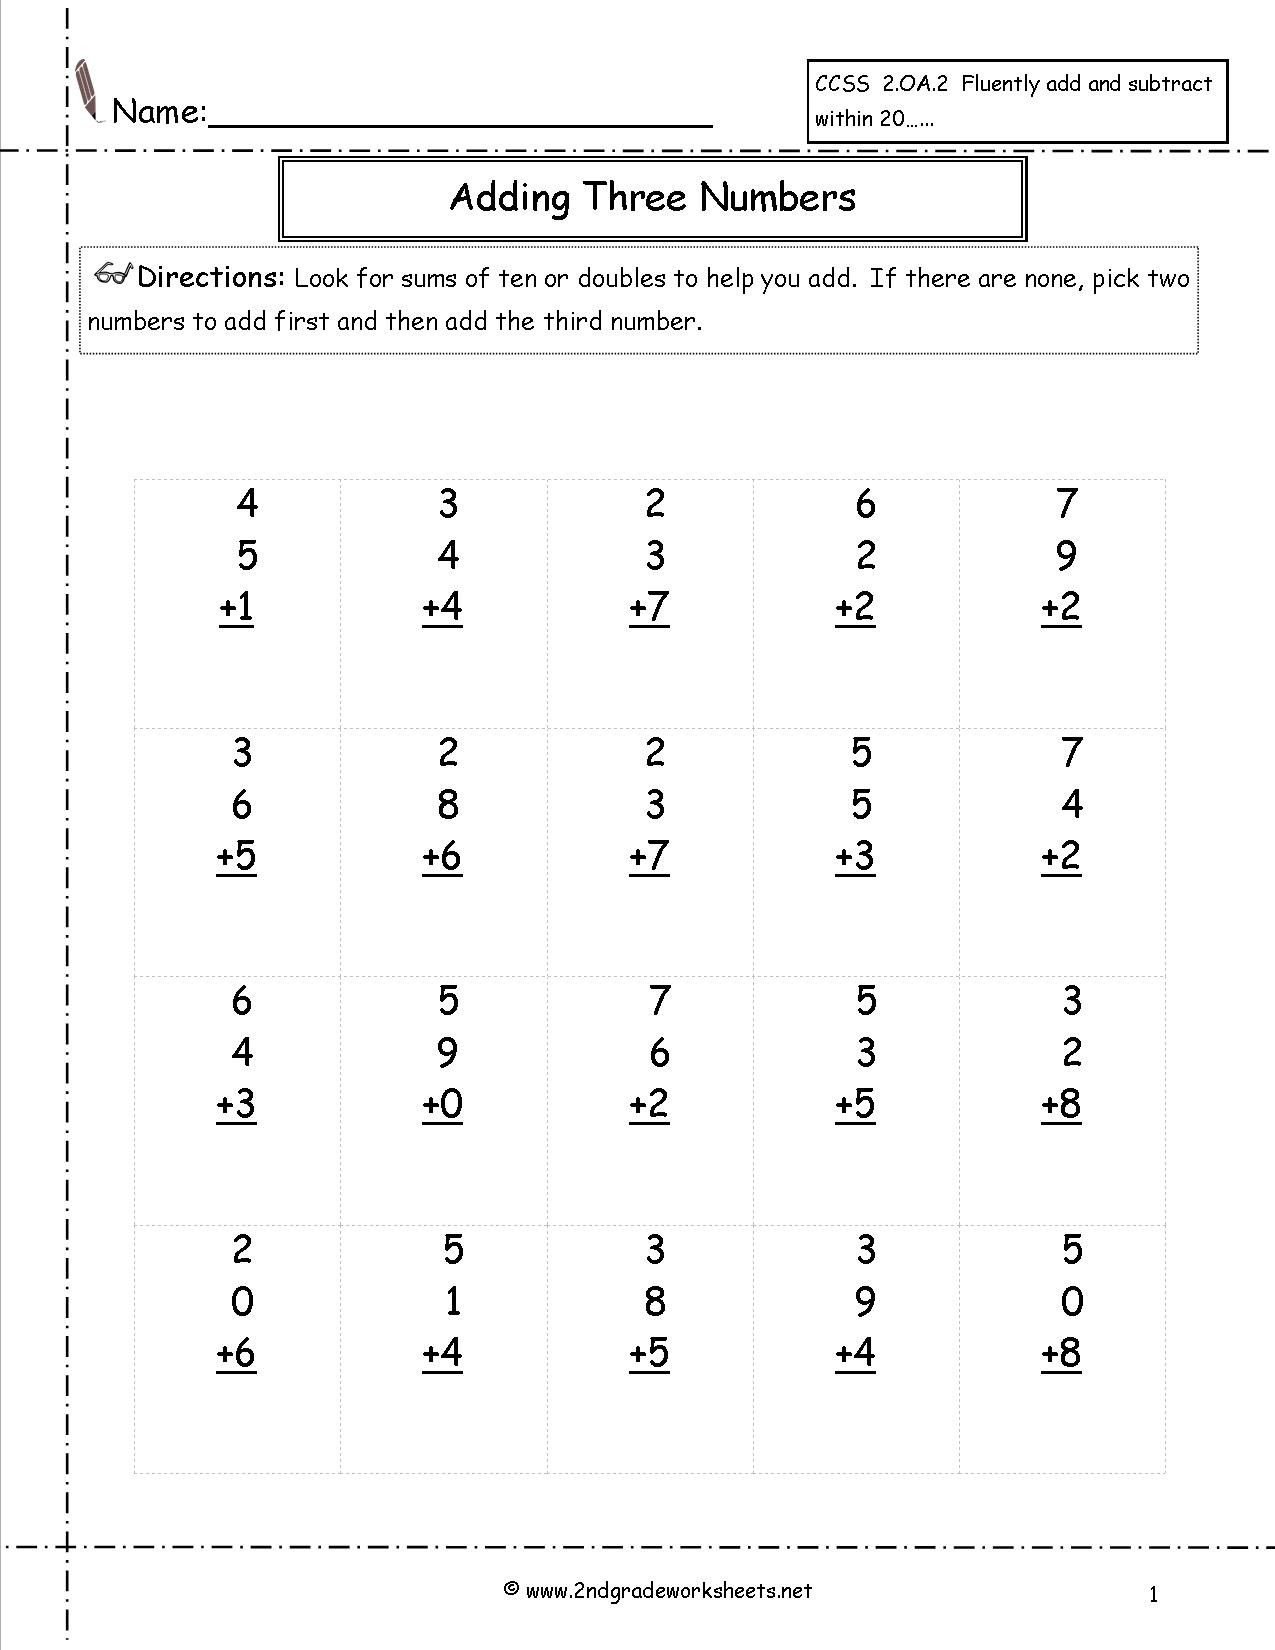 Place Value Worksheets From The Teacher S Guide Place Value Worksheets 2nd Grade Math Worksheets Place Values